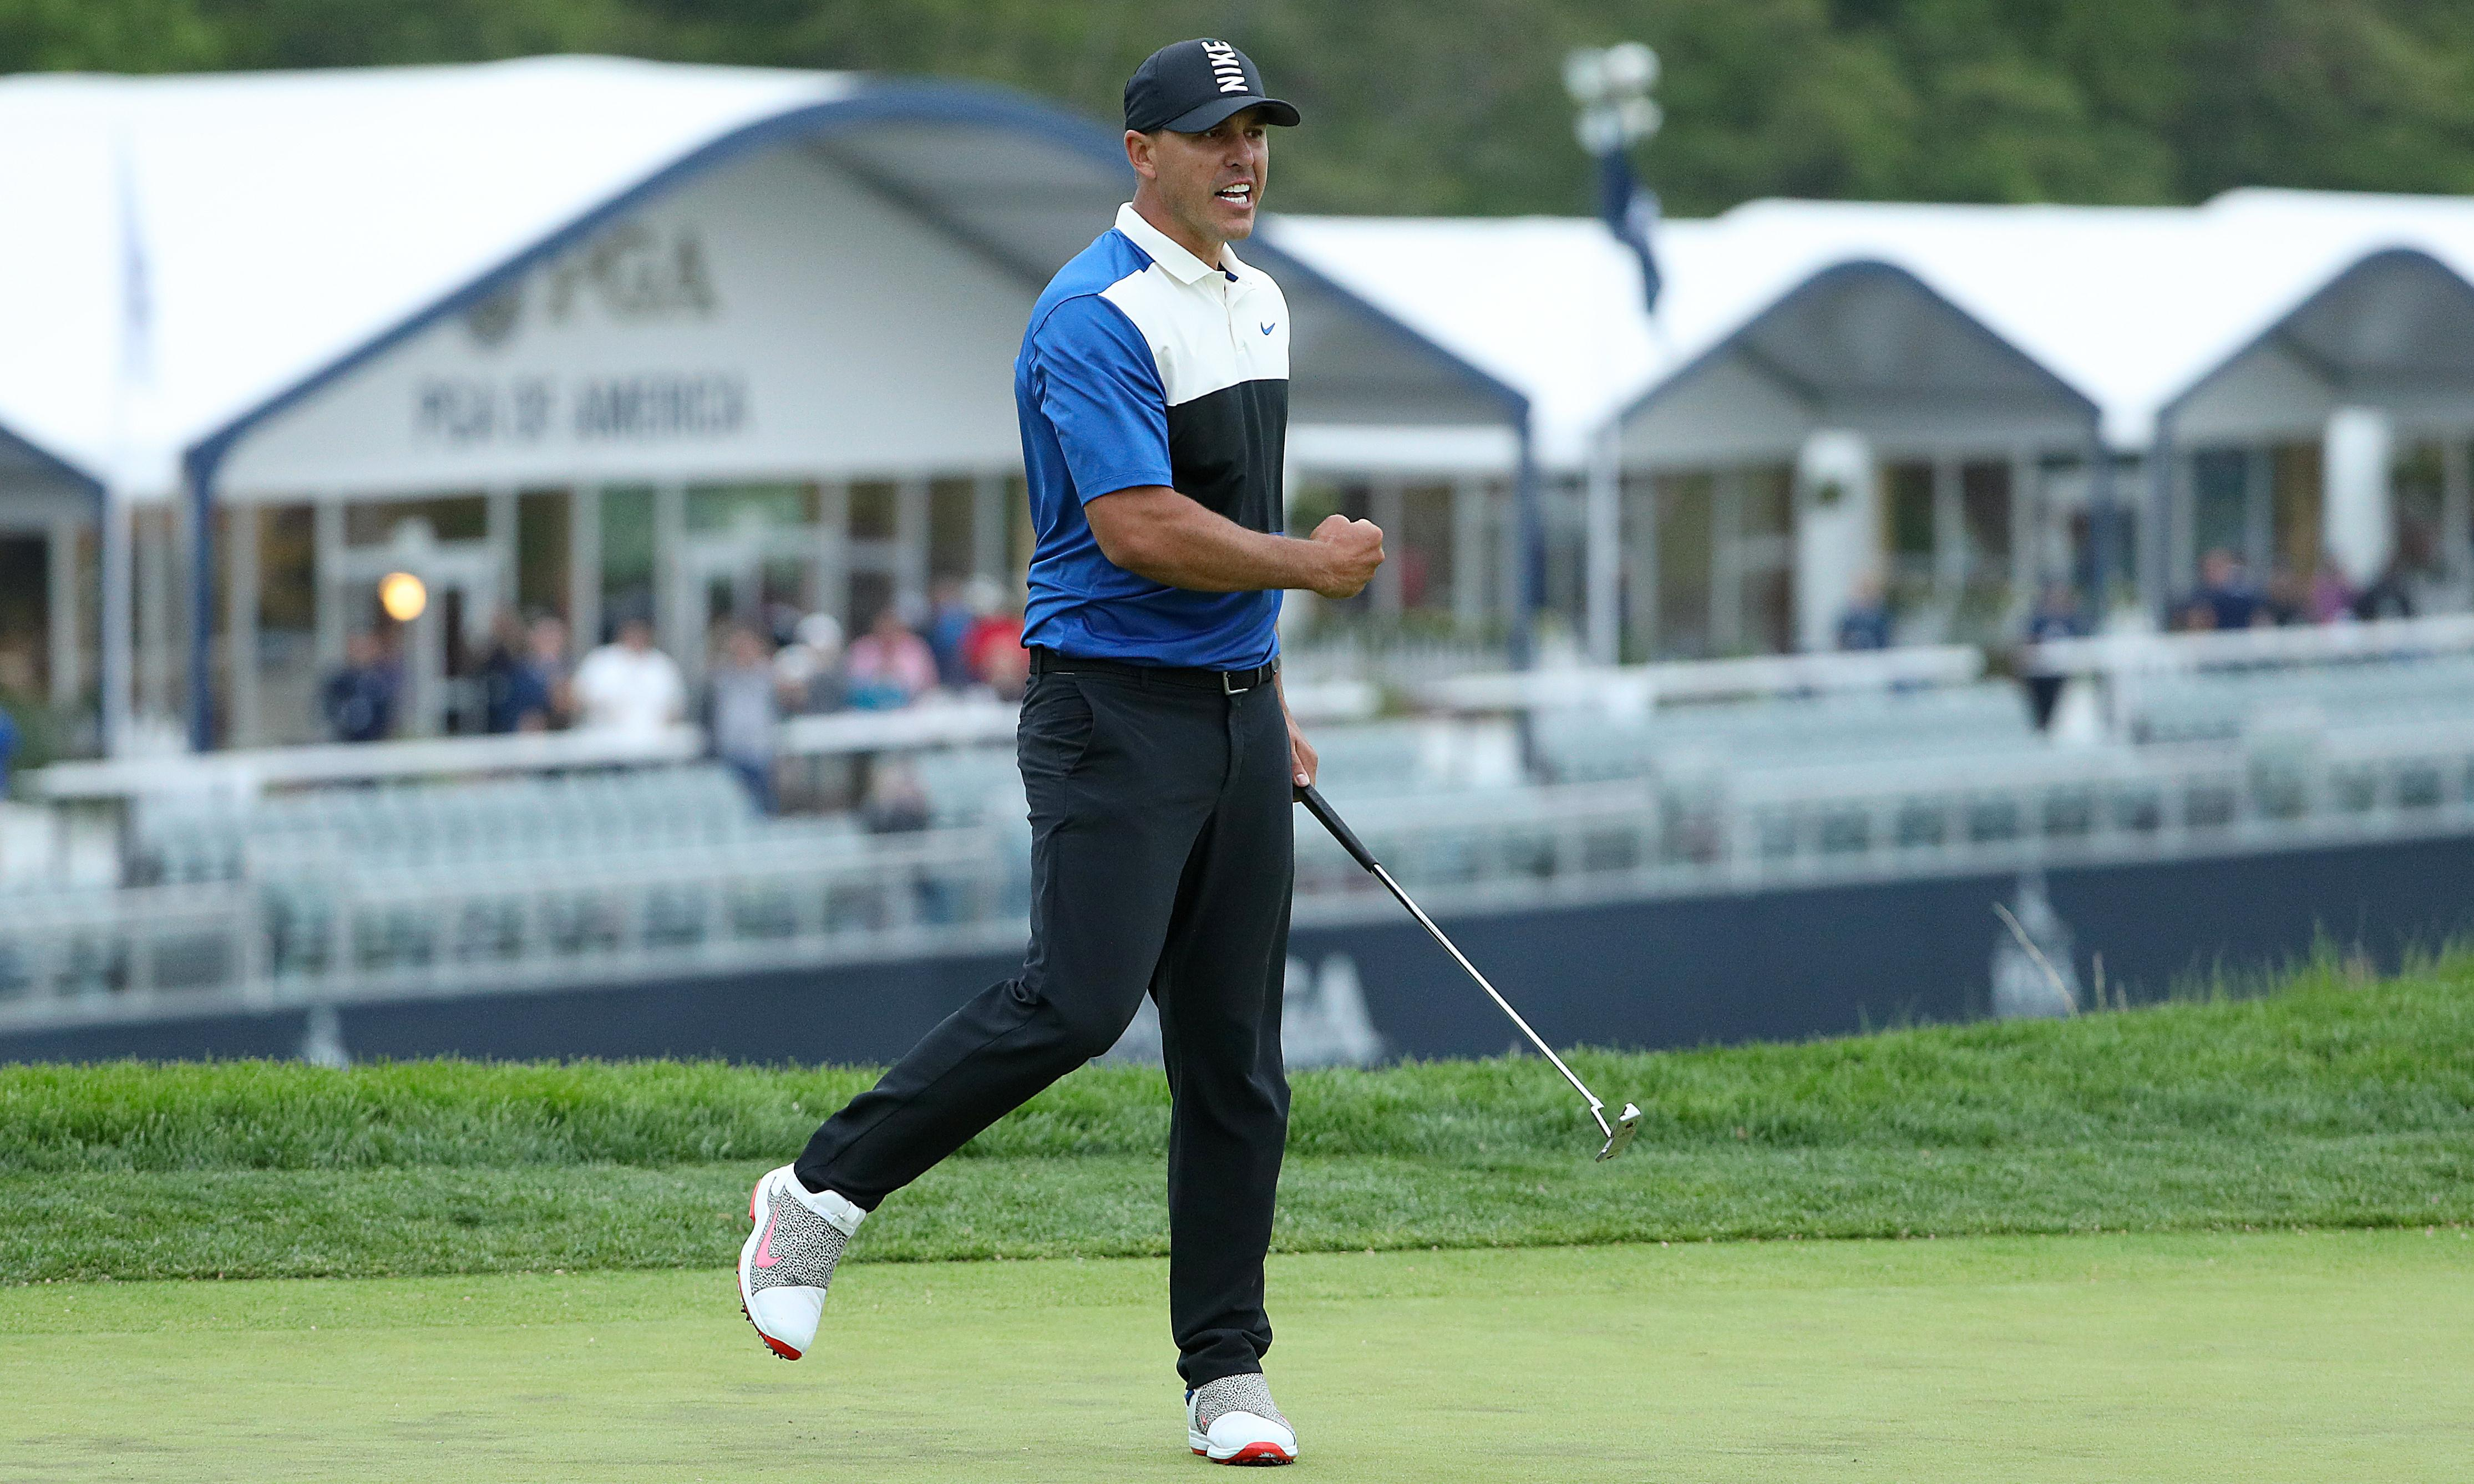 Brooks Koepka says fans' chants for 'DJ' helped him recover to win US PGA title